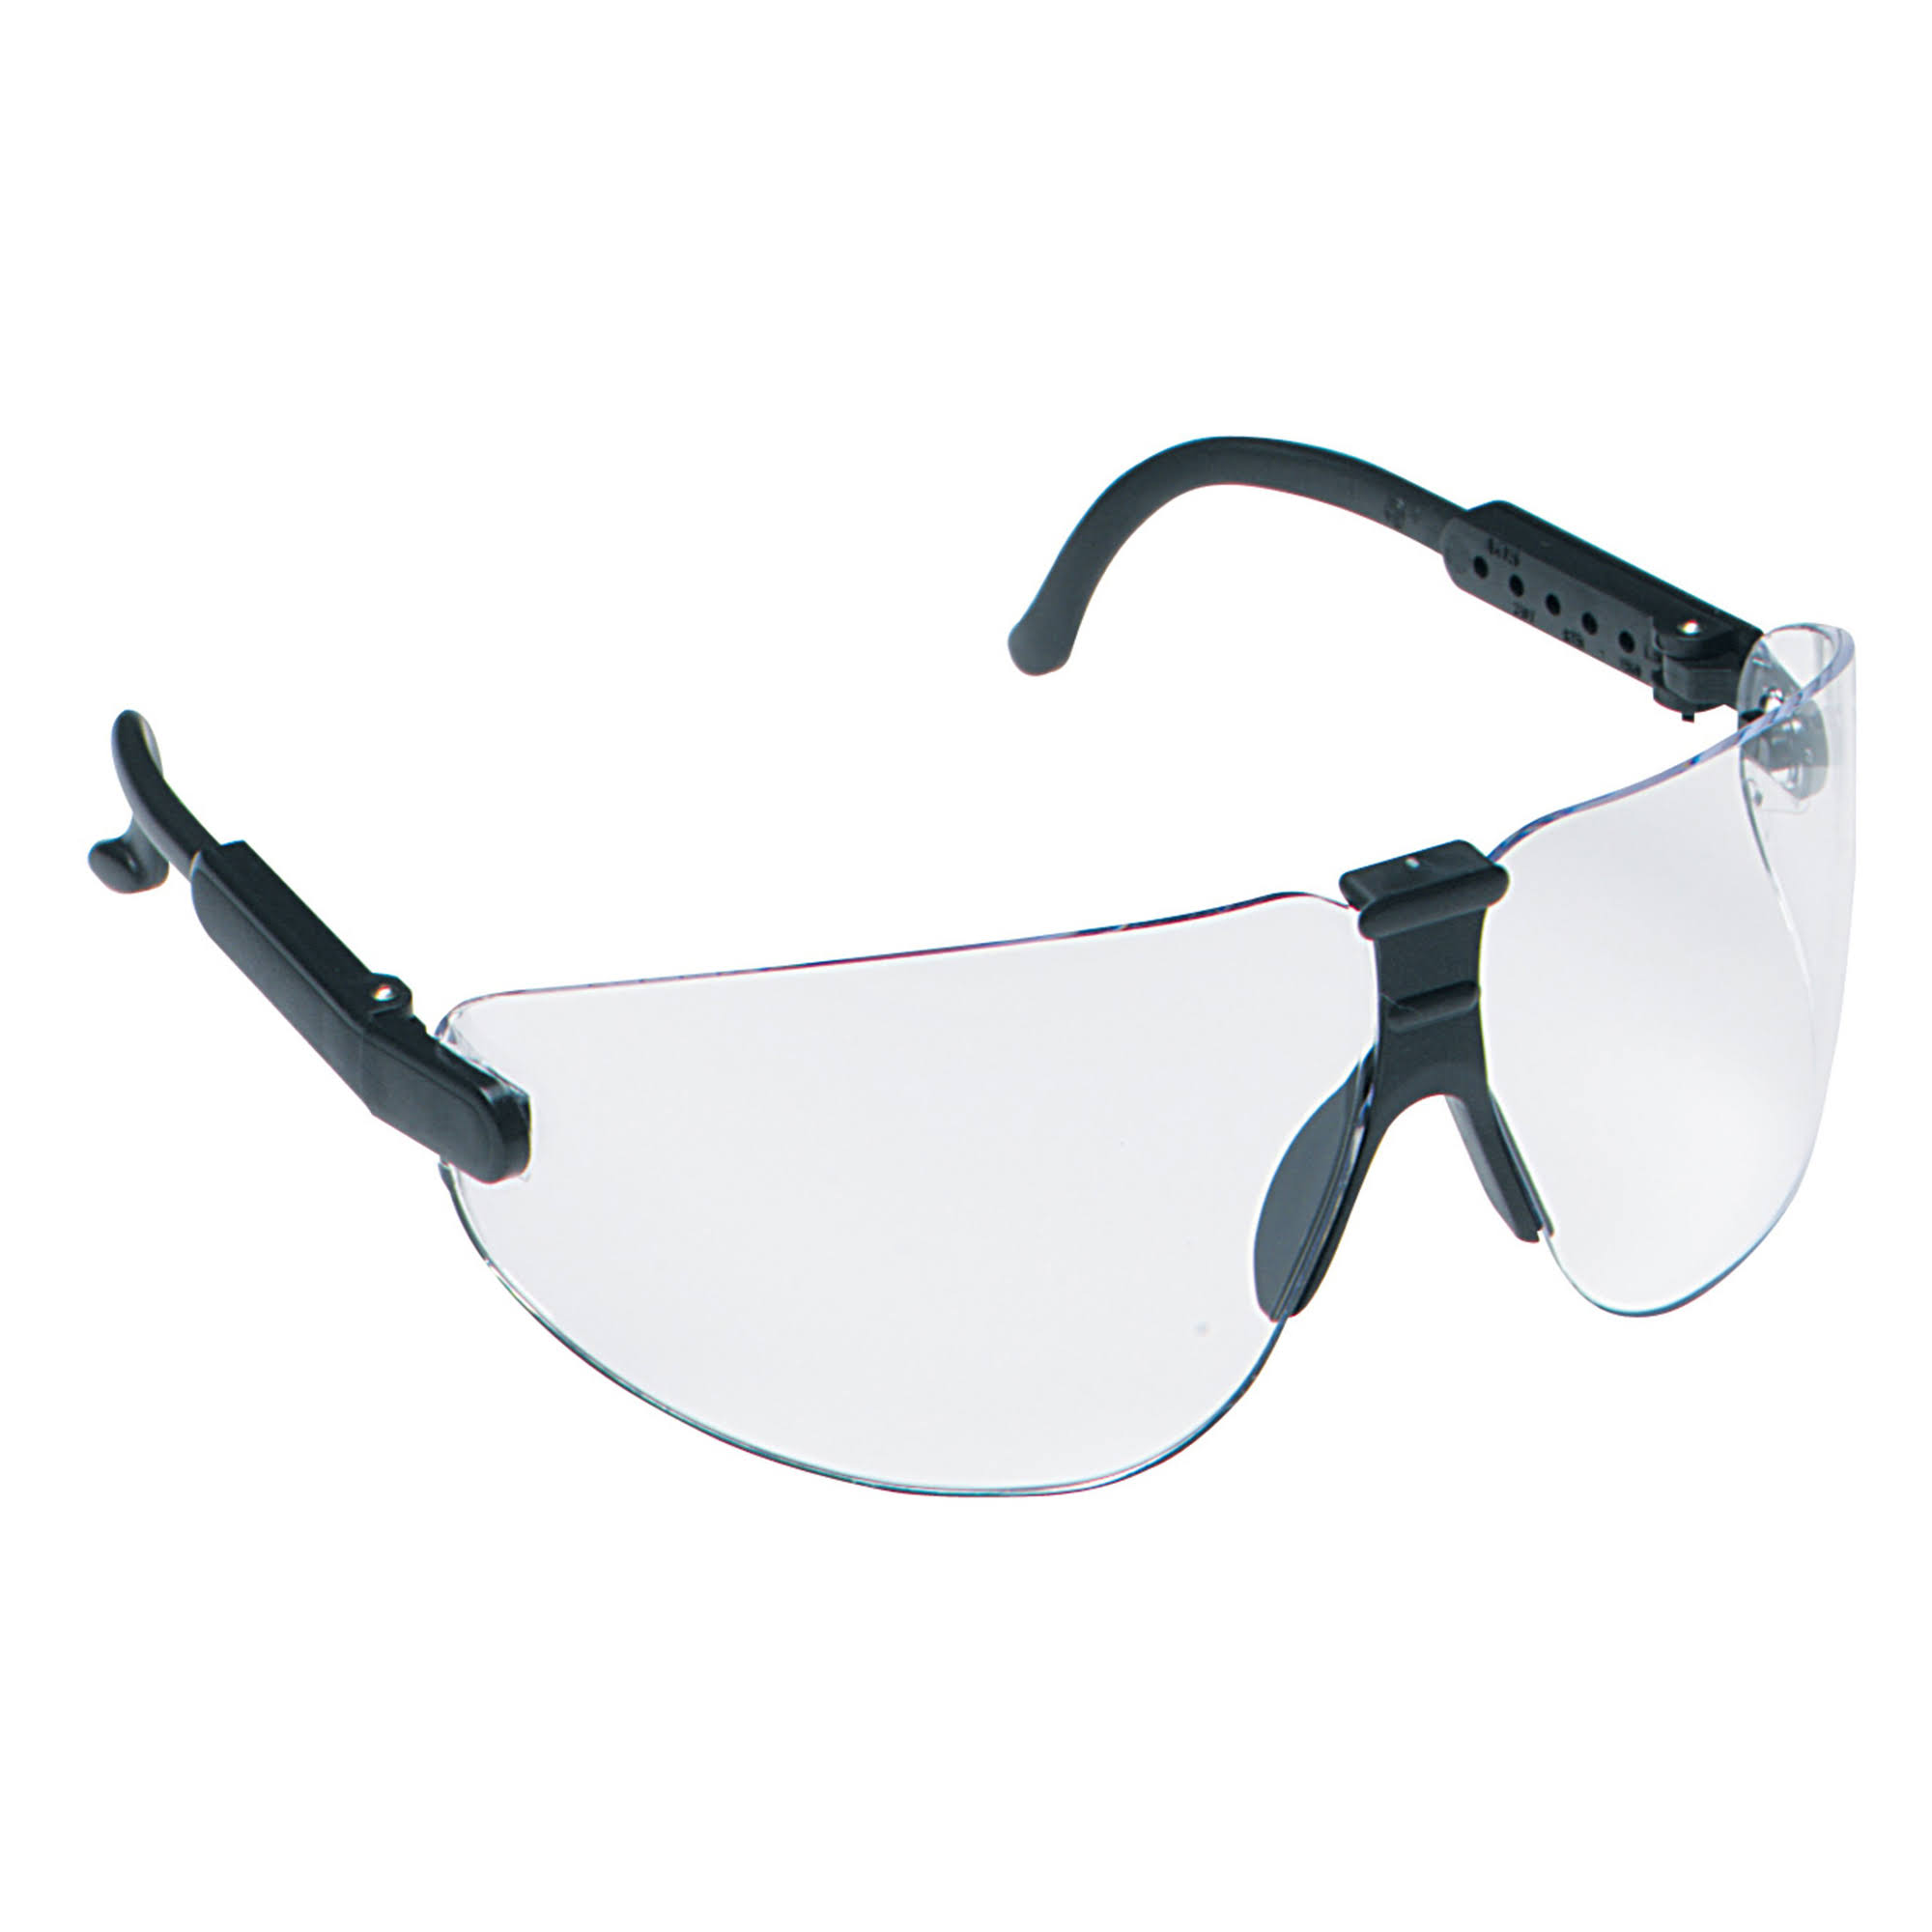 3M Professional Safety Glasses Clear Lens